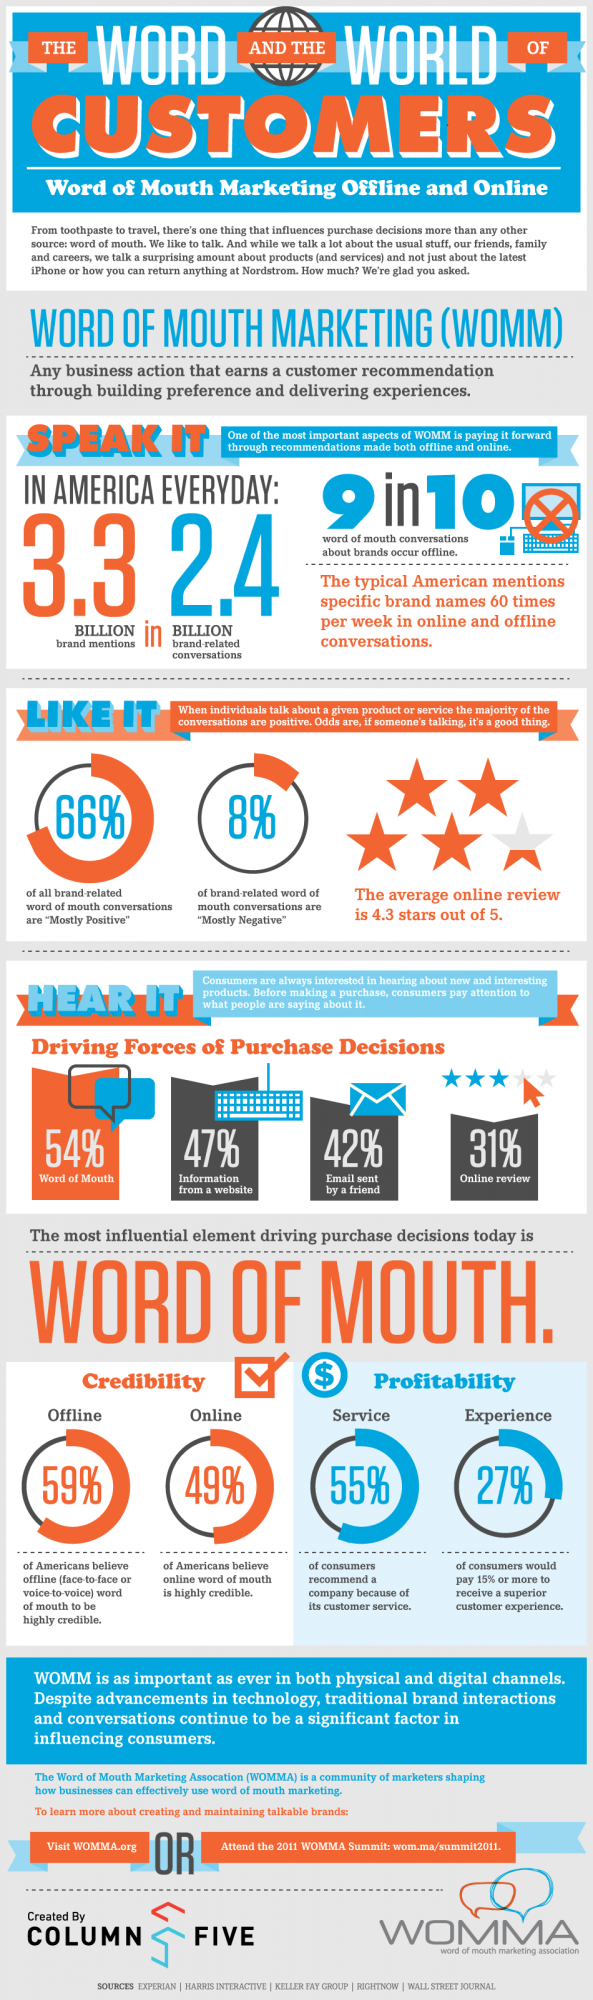 Marketing Campaign Template Word Infographic What's The Word On Word Of Mouth Marketing .